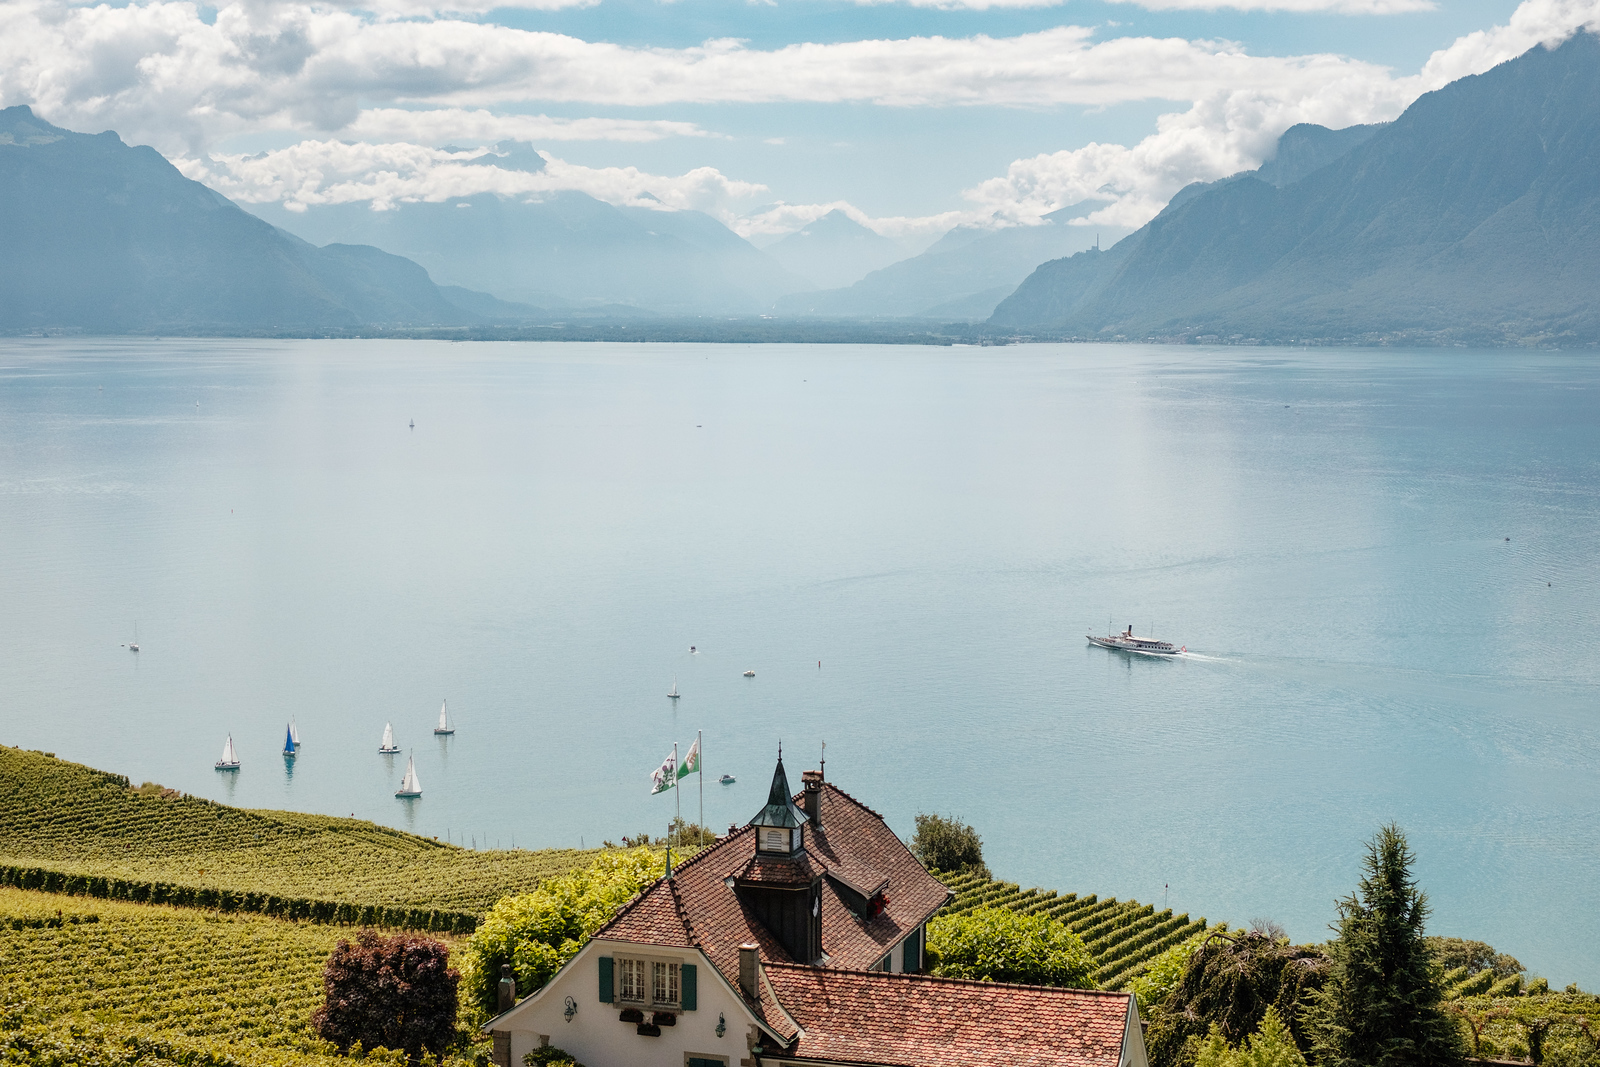 Looking at the Bouveret from Lavaux, boats on the lake Geneva